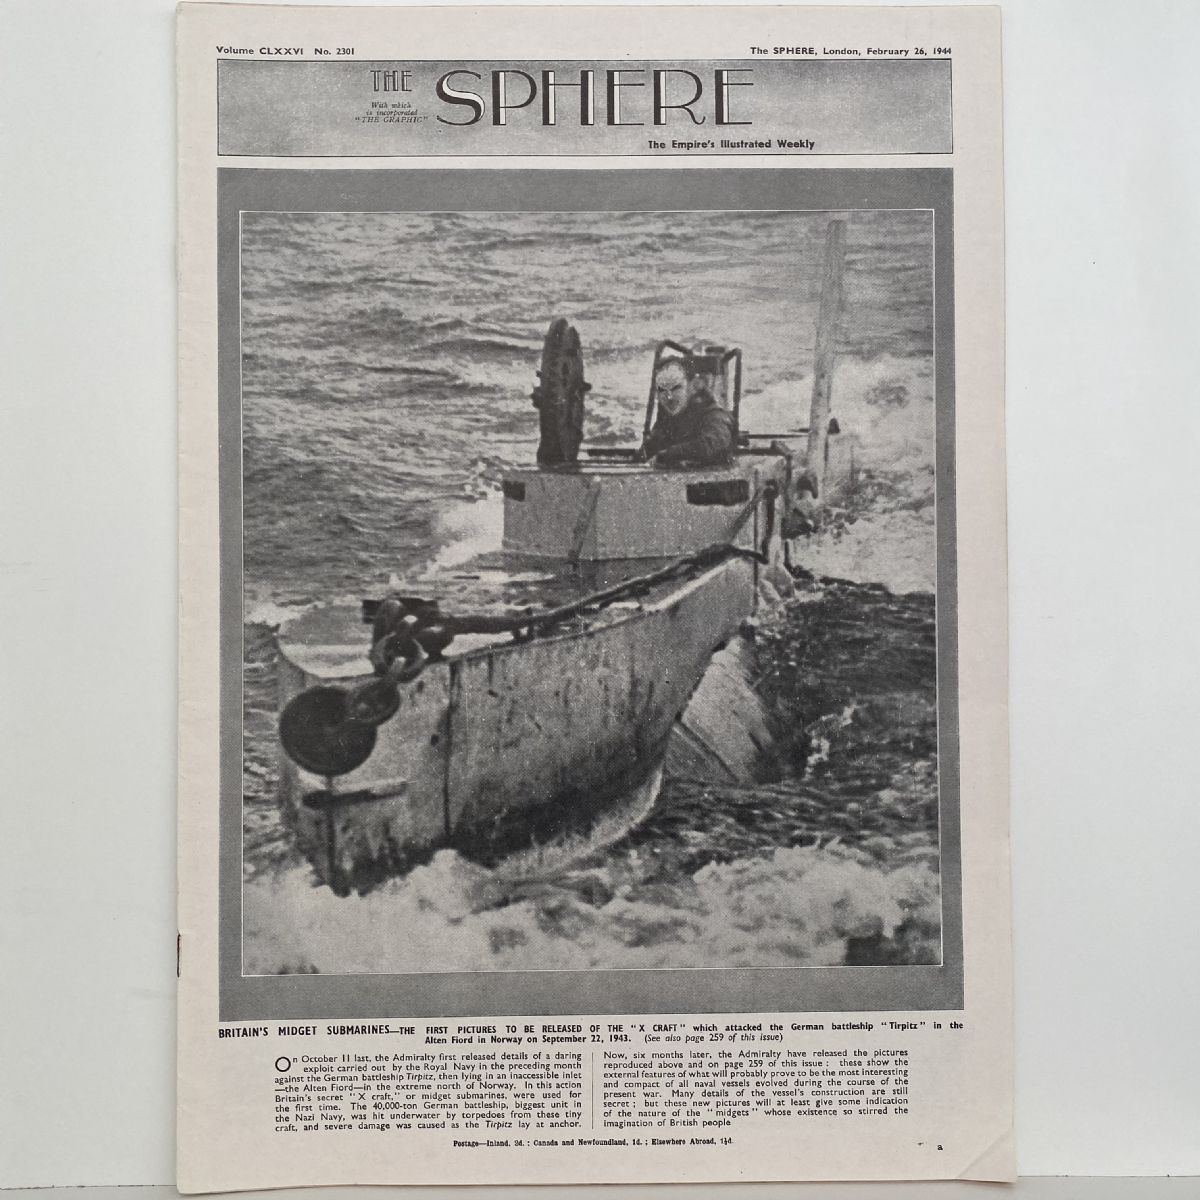 THE SPHERE The Empire's Illustrated Weekly. February 26, 1944. No.2301